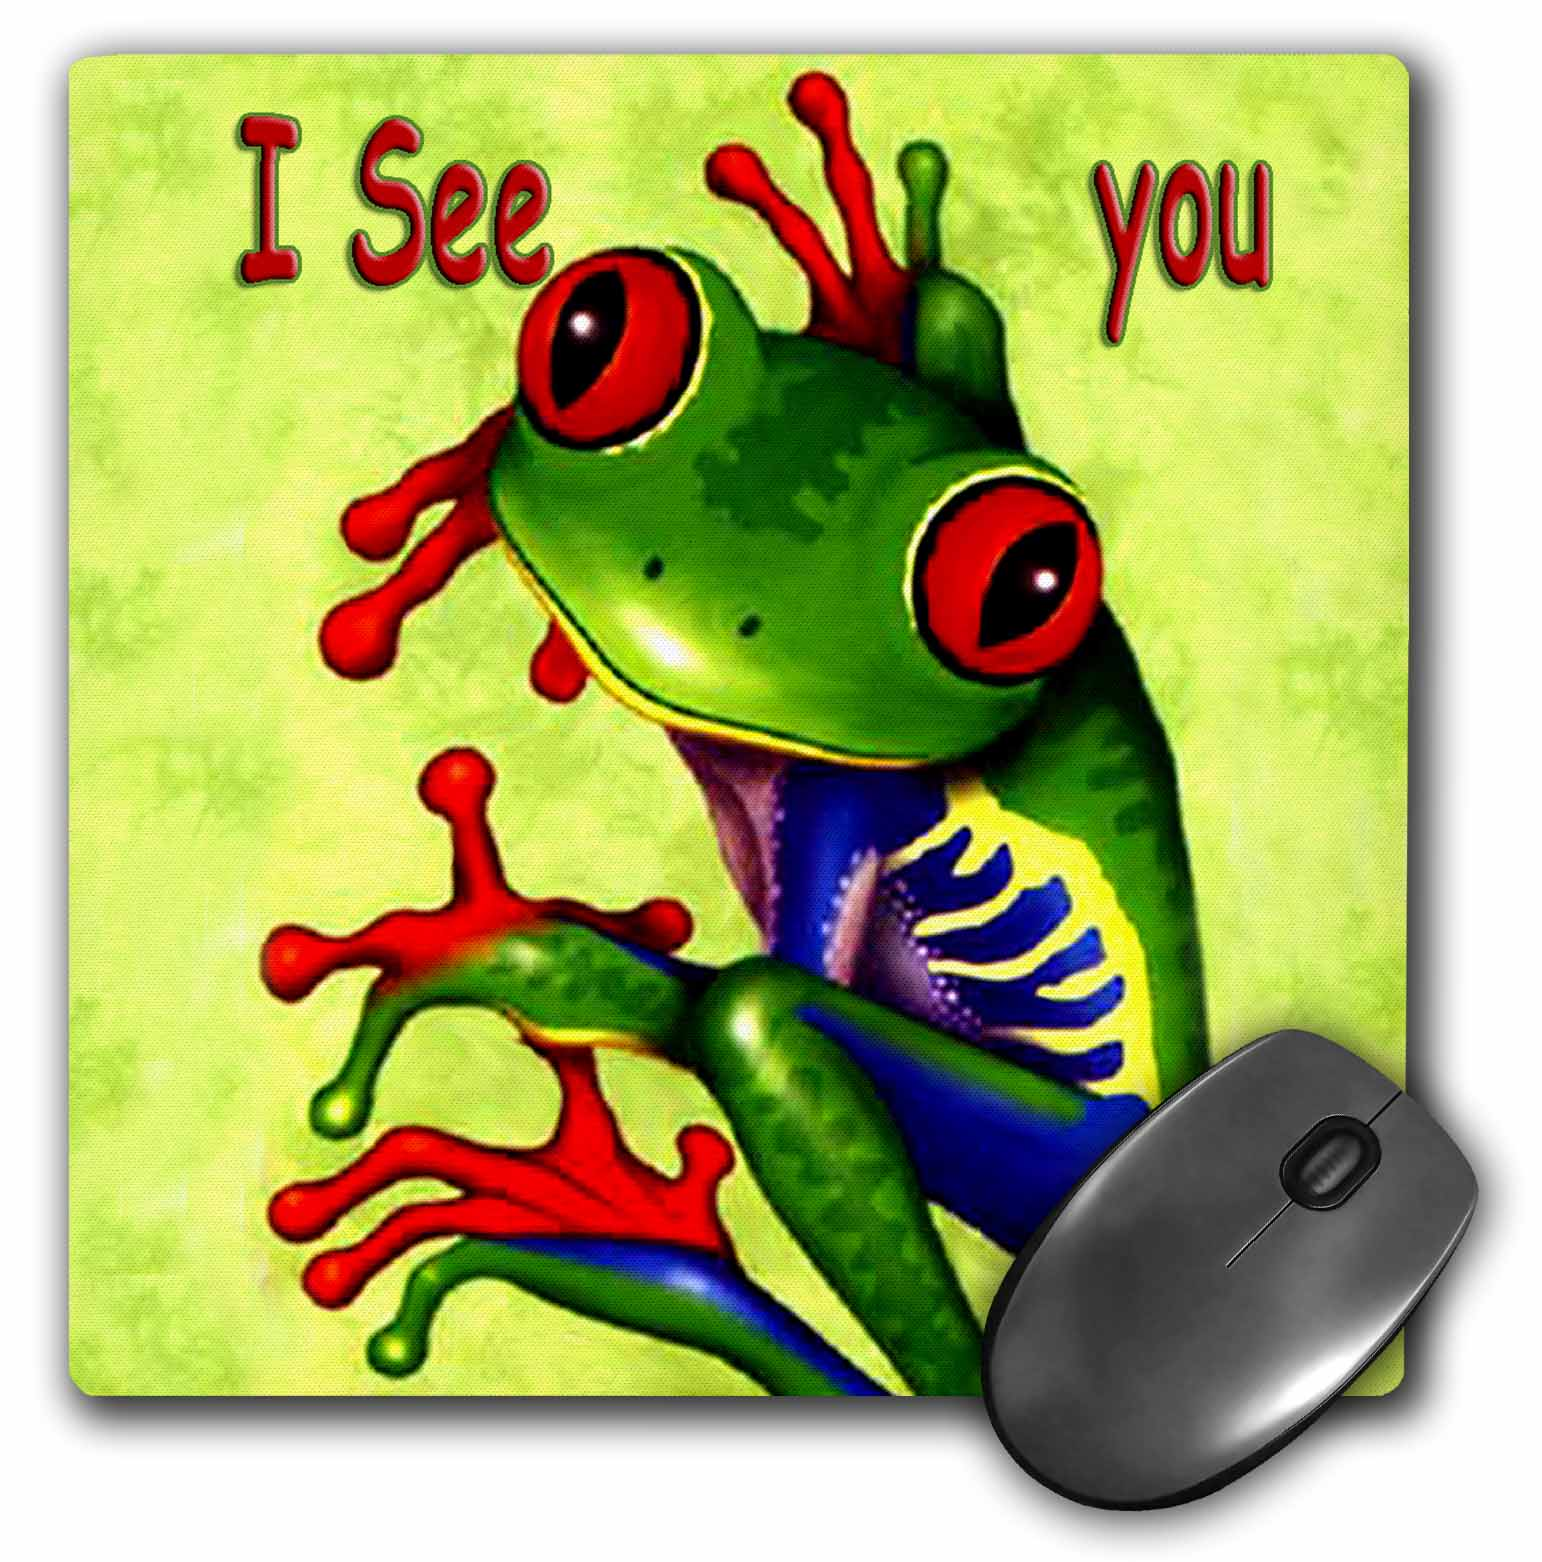 3dRose Frog I see You, Mouse Pad, 8 by 8 inches